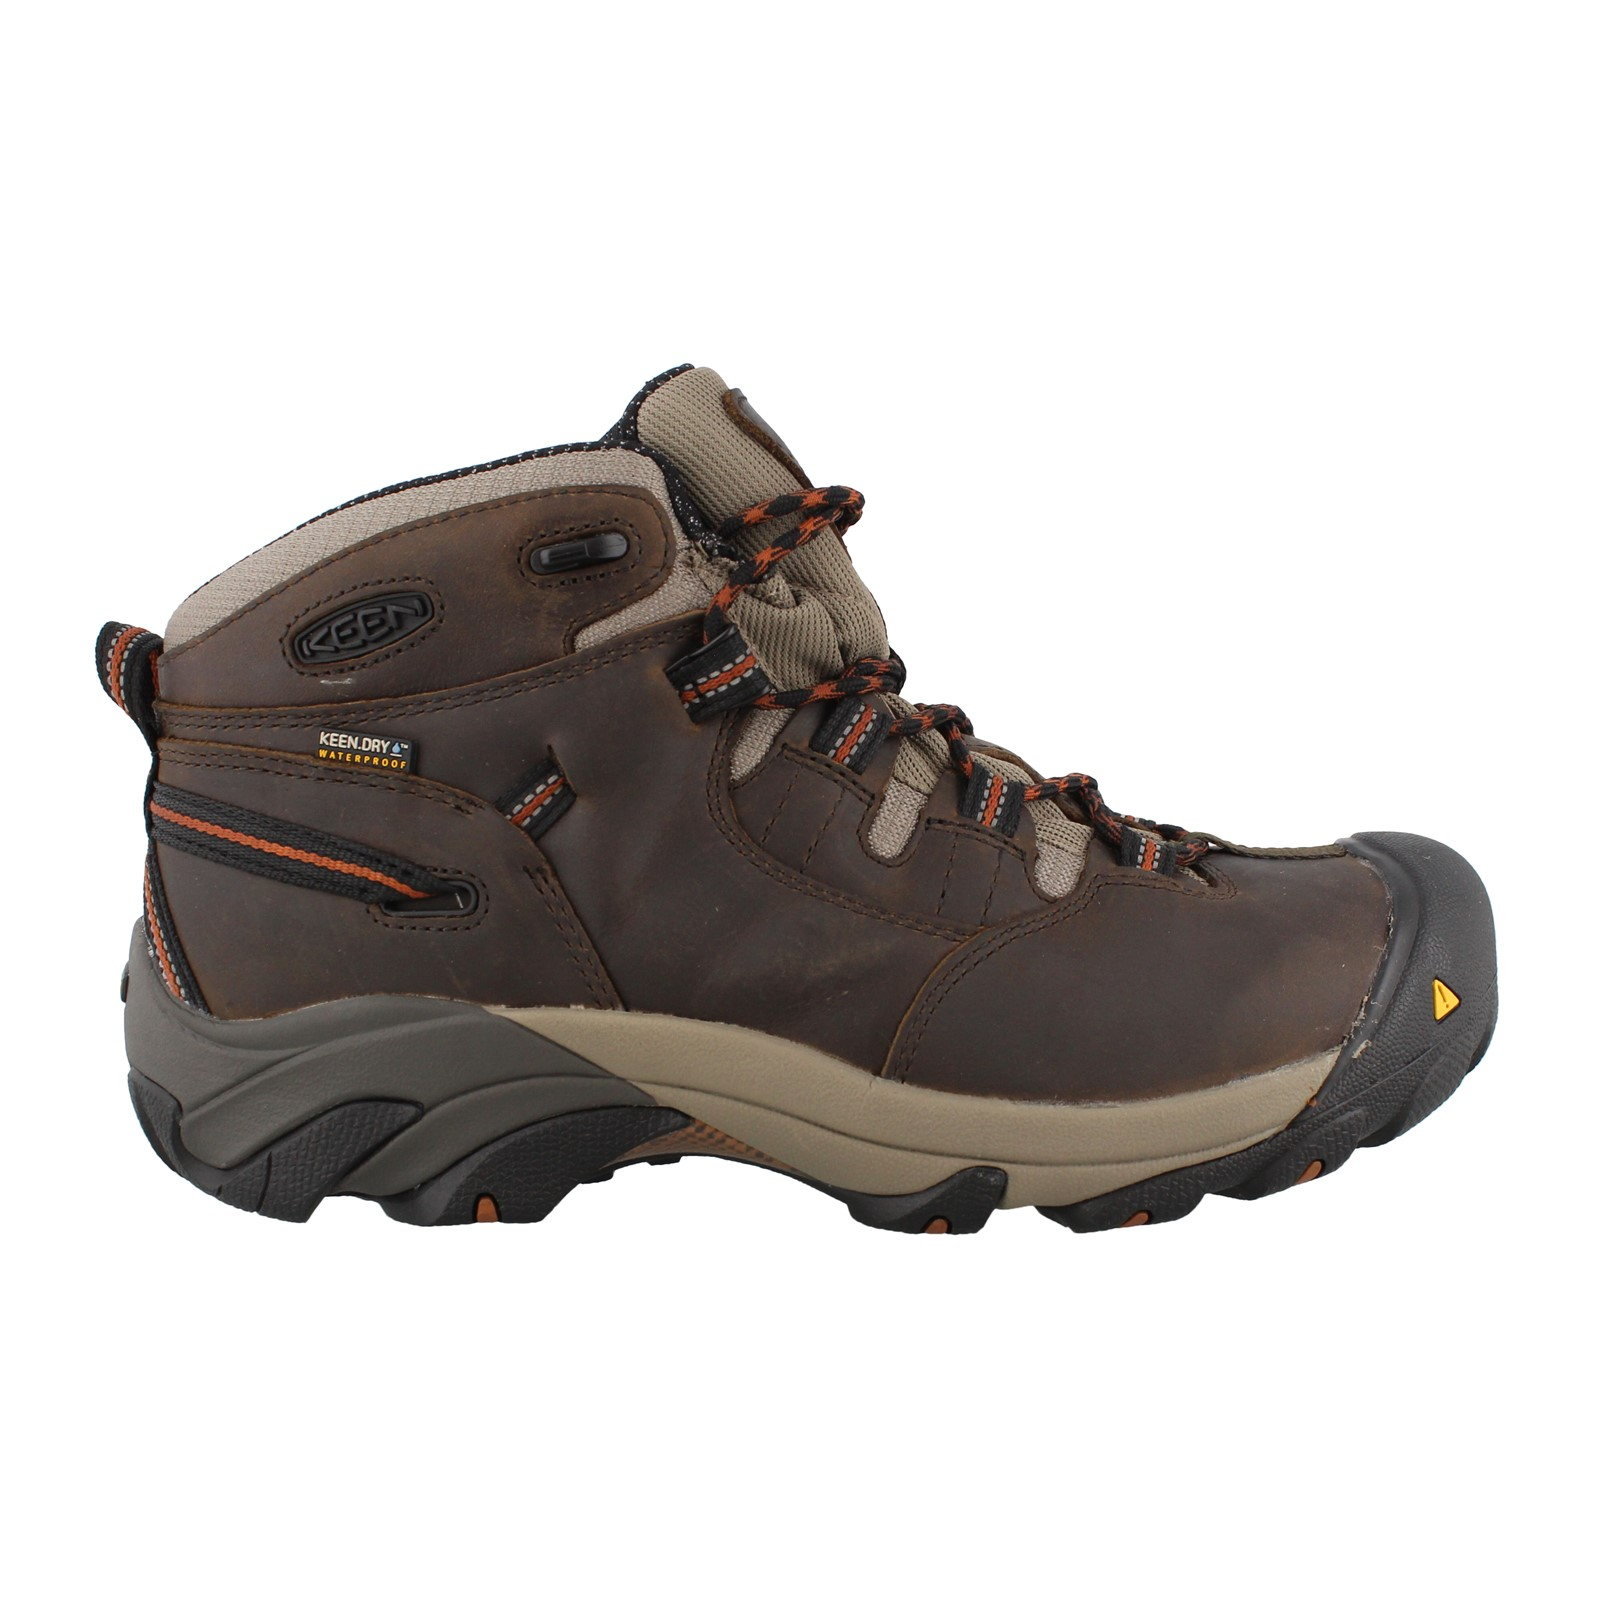 Men's Keen, Detroit Mid Soft Toe Work Boots